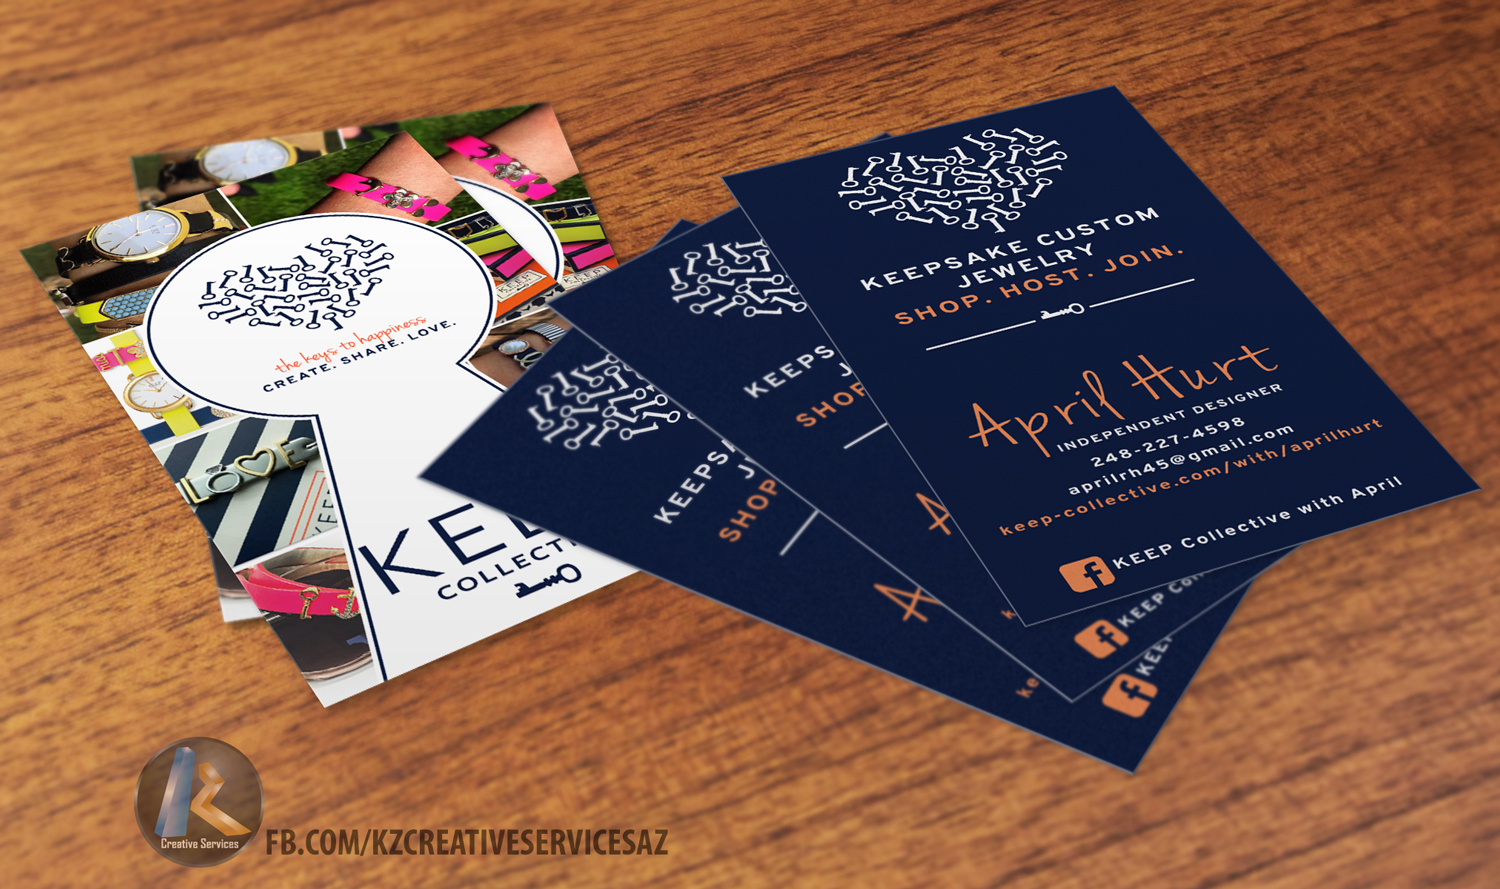 Keep collective business cards style 1 kz creative services keep collective business cards style 1 colourmoves